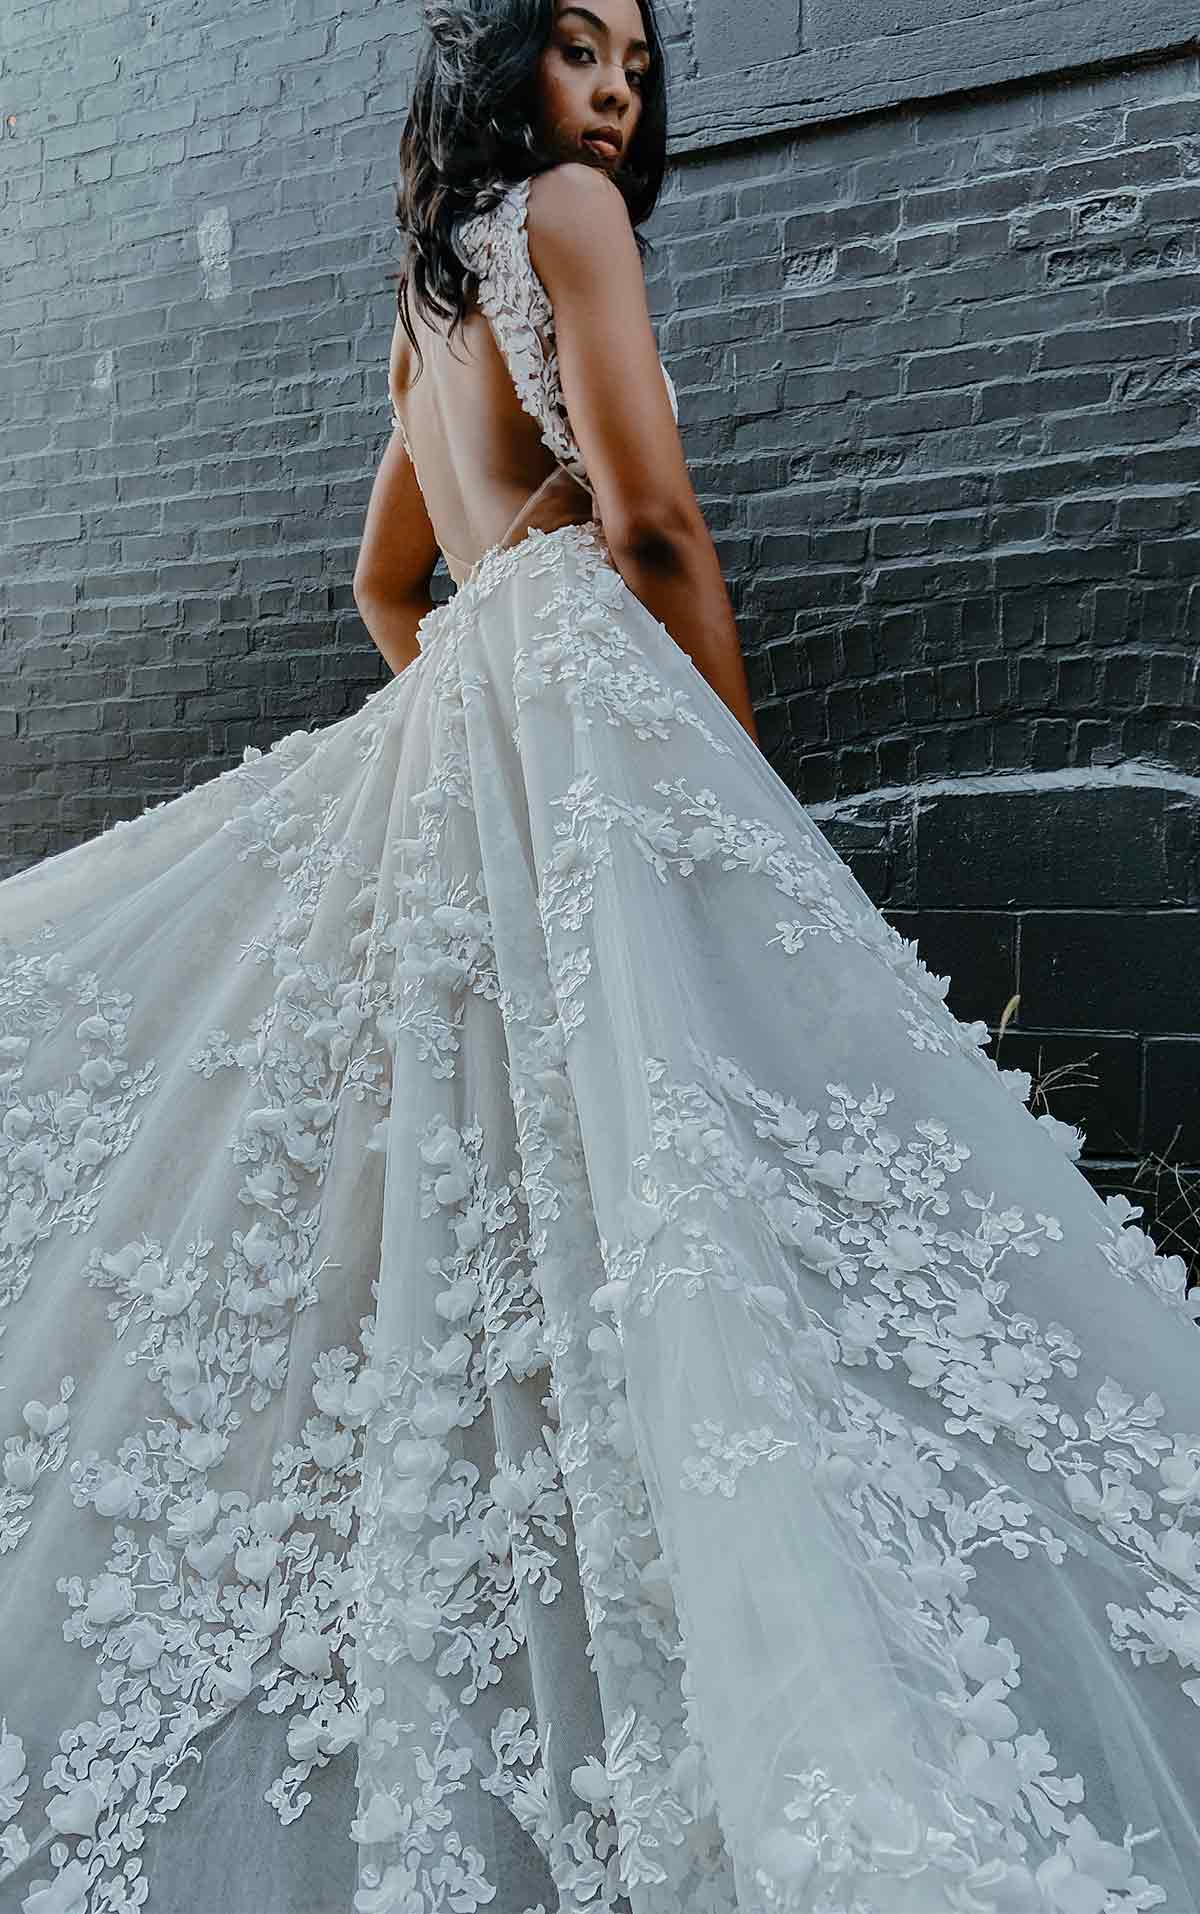 LE1118 3D Floral Lace Wedding Dress with Sleeves by Martina Liana